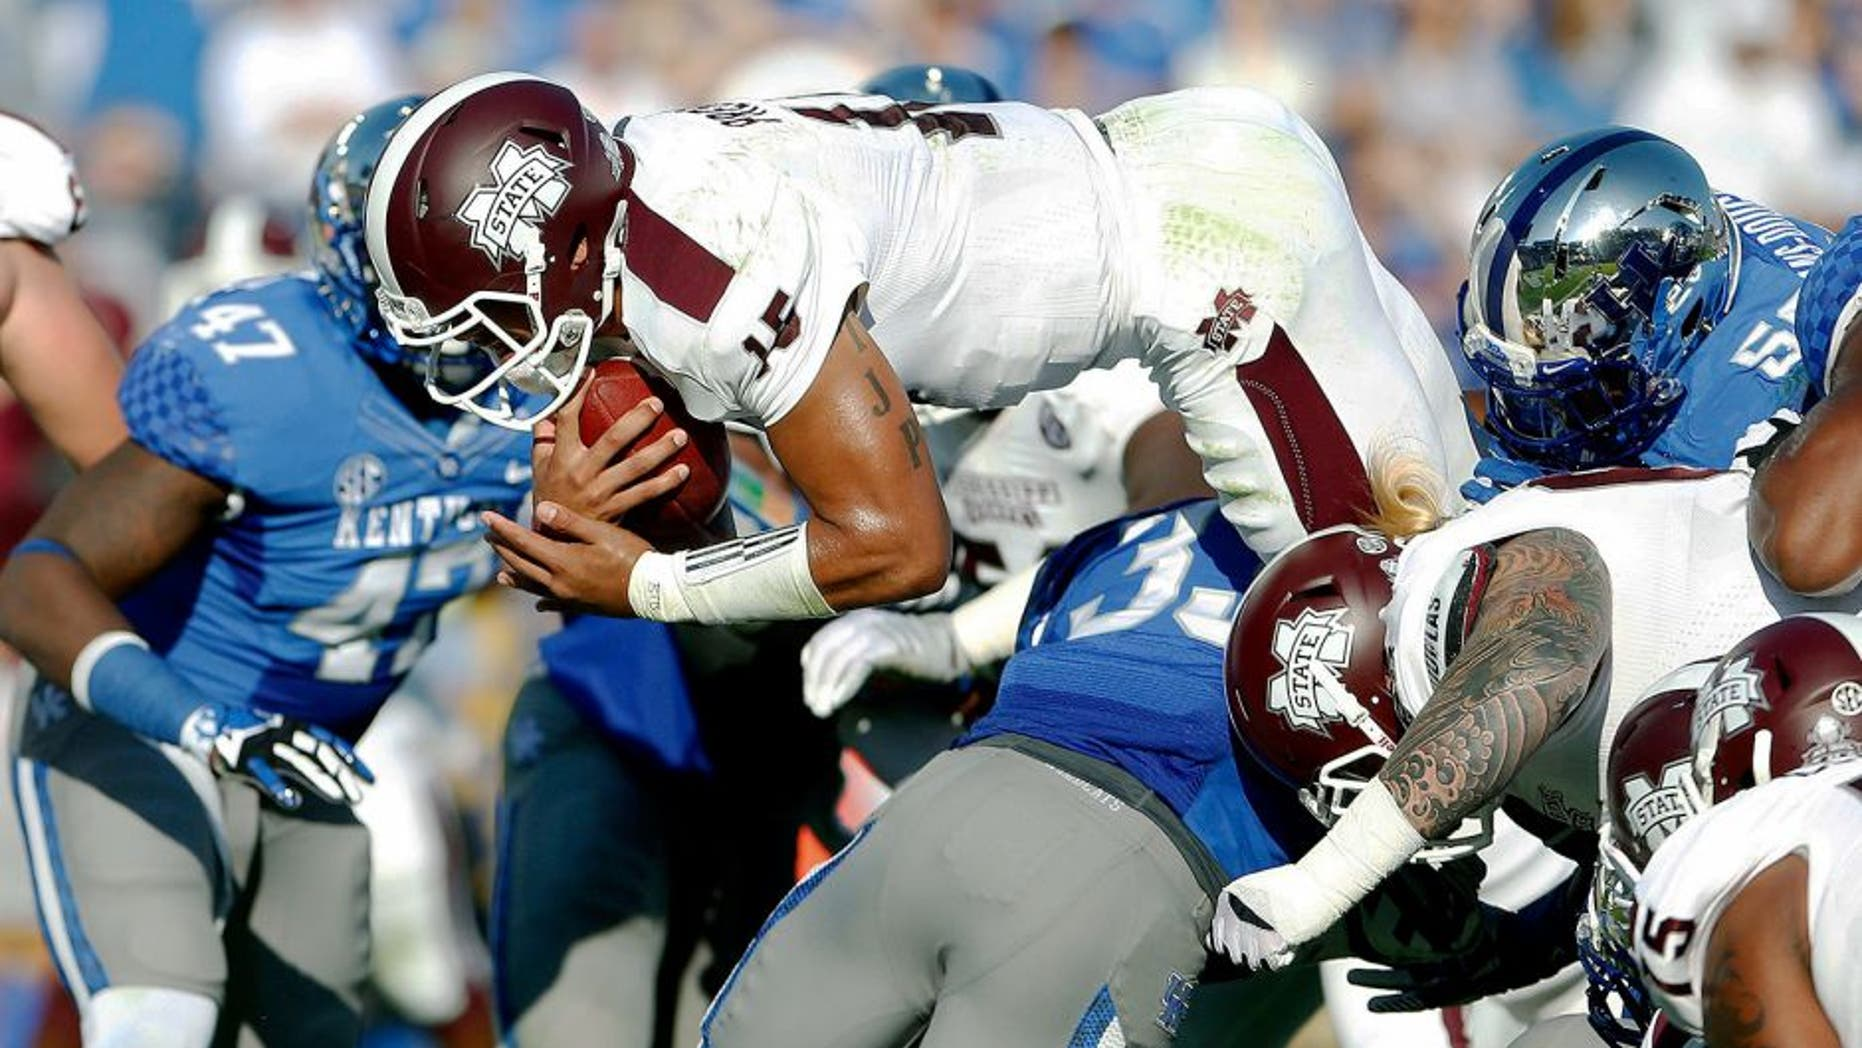 Oct 25, 2014; Lexington, KY, USA; Mississippi State Bulldogs quarterback Dak Prescott (15) dives for a touchdown against the Kentucky Wildcats in the first half at Commonwealth Stadium. Mandatory Credit: Mark Zerof-USA TODAY Sports